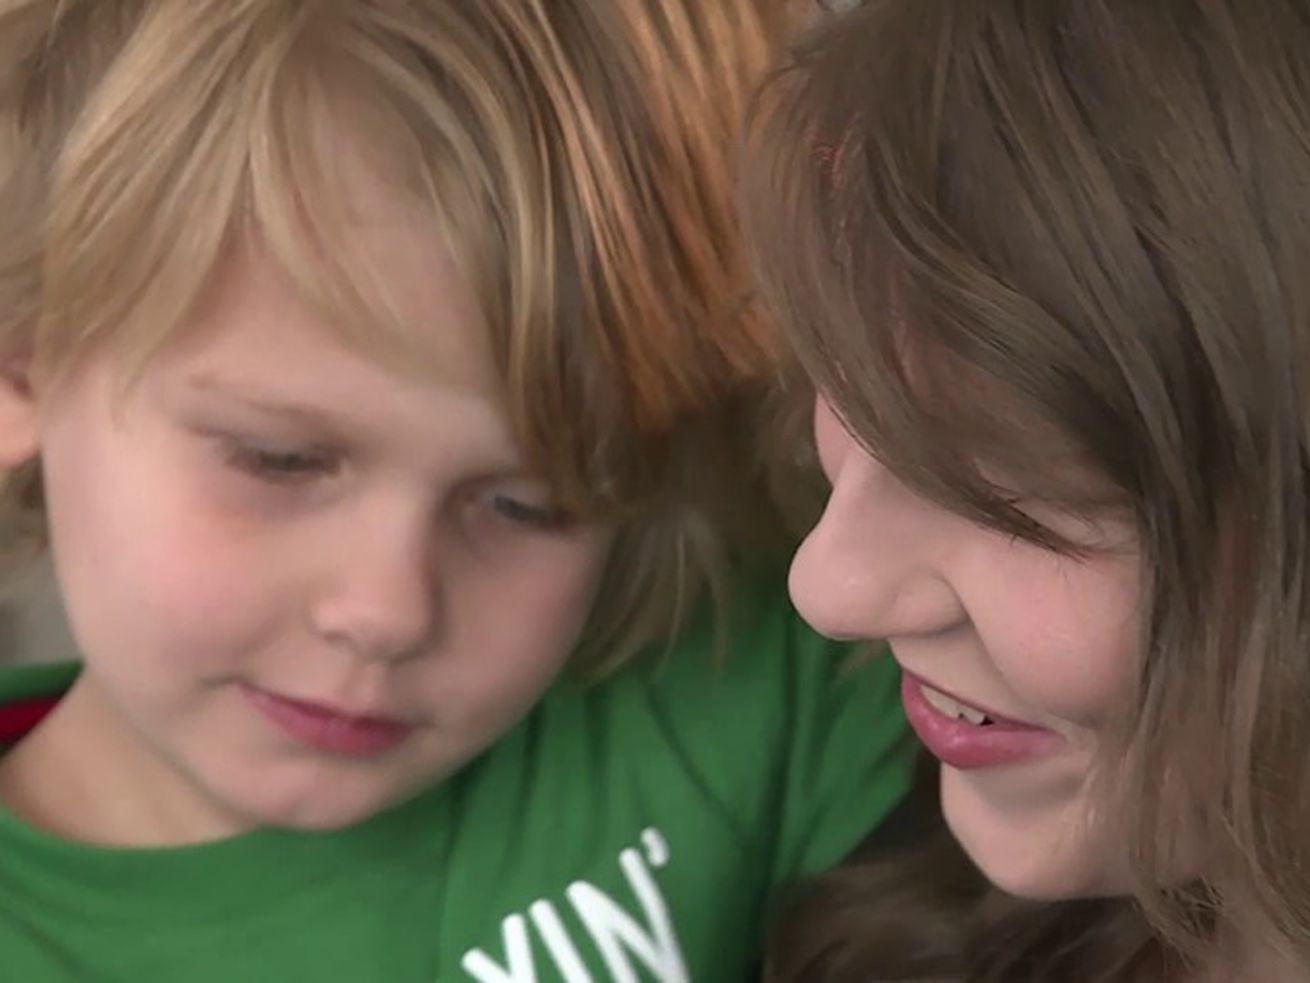 'I can do it boy': Utah mom describes son's attitude after arm chewed off by dogs